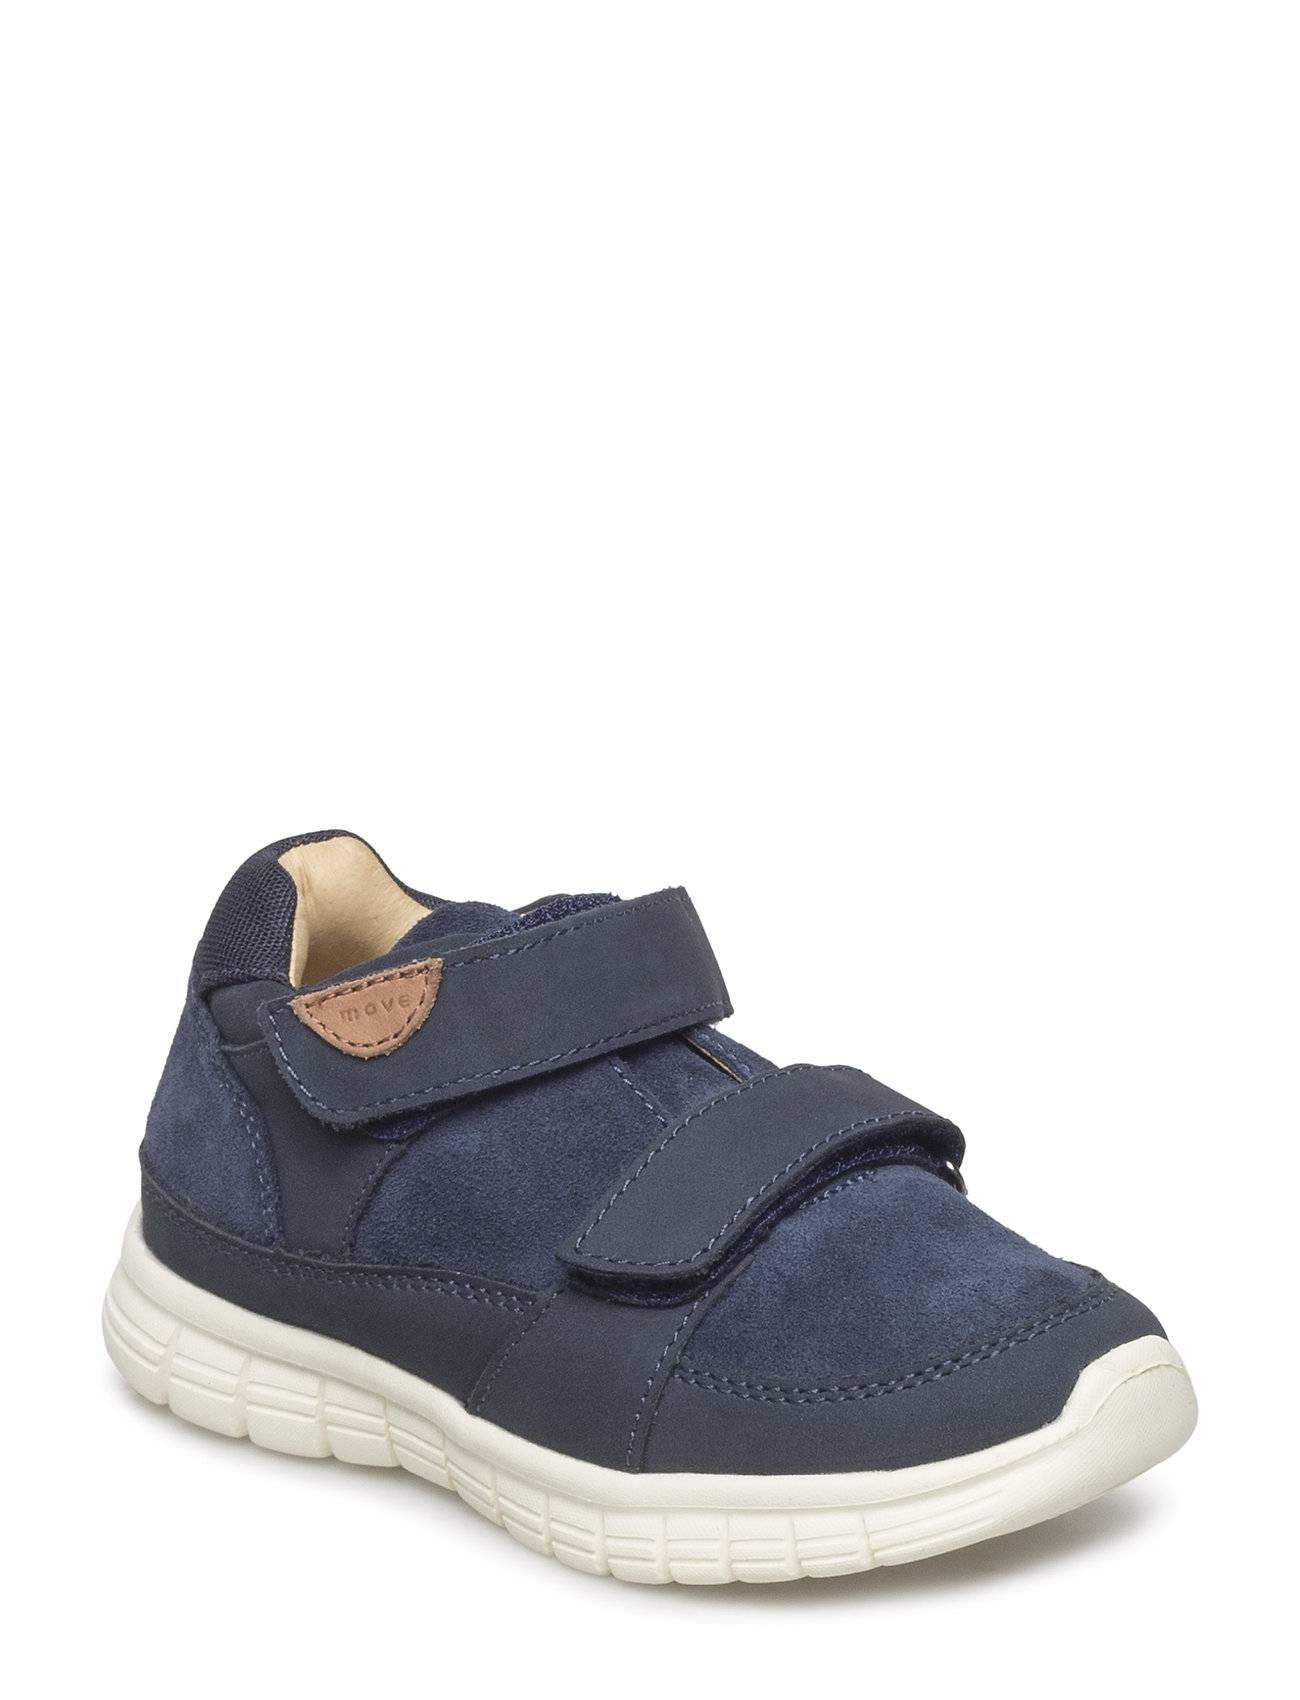 Move by Melton Infant - Unisex Sneaker With Velcro